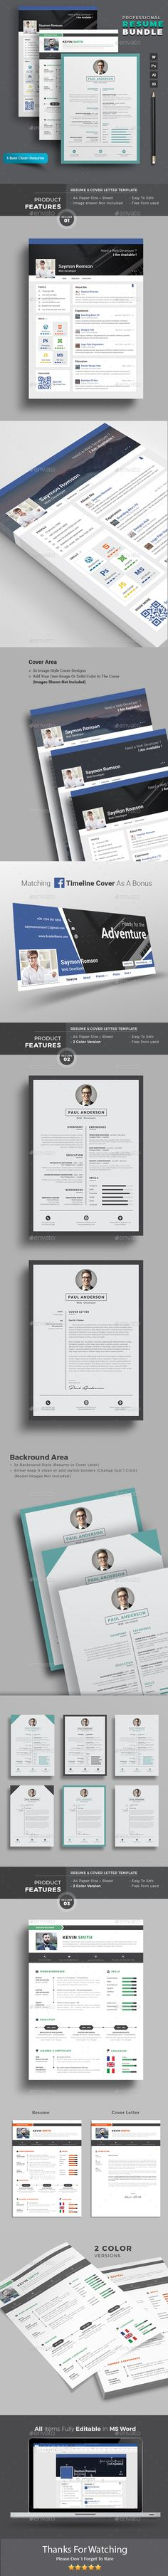 Resume Templates Psd, Indesign Indd, Ai Illustrator, Ms Word